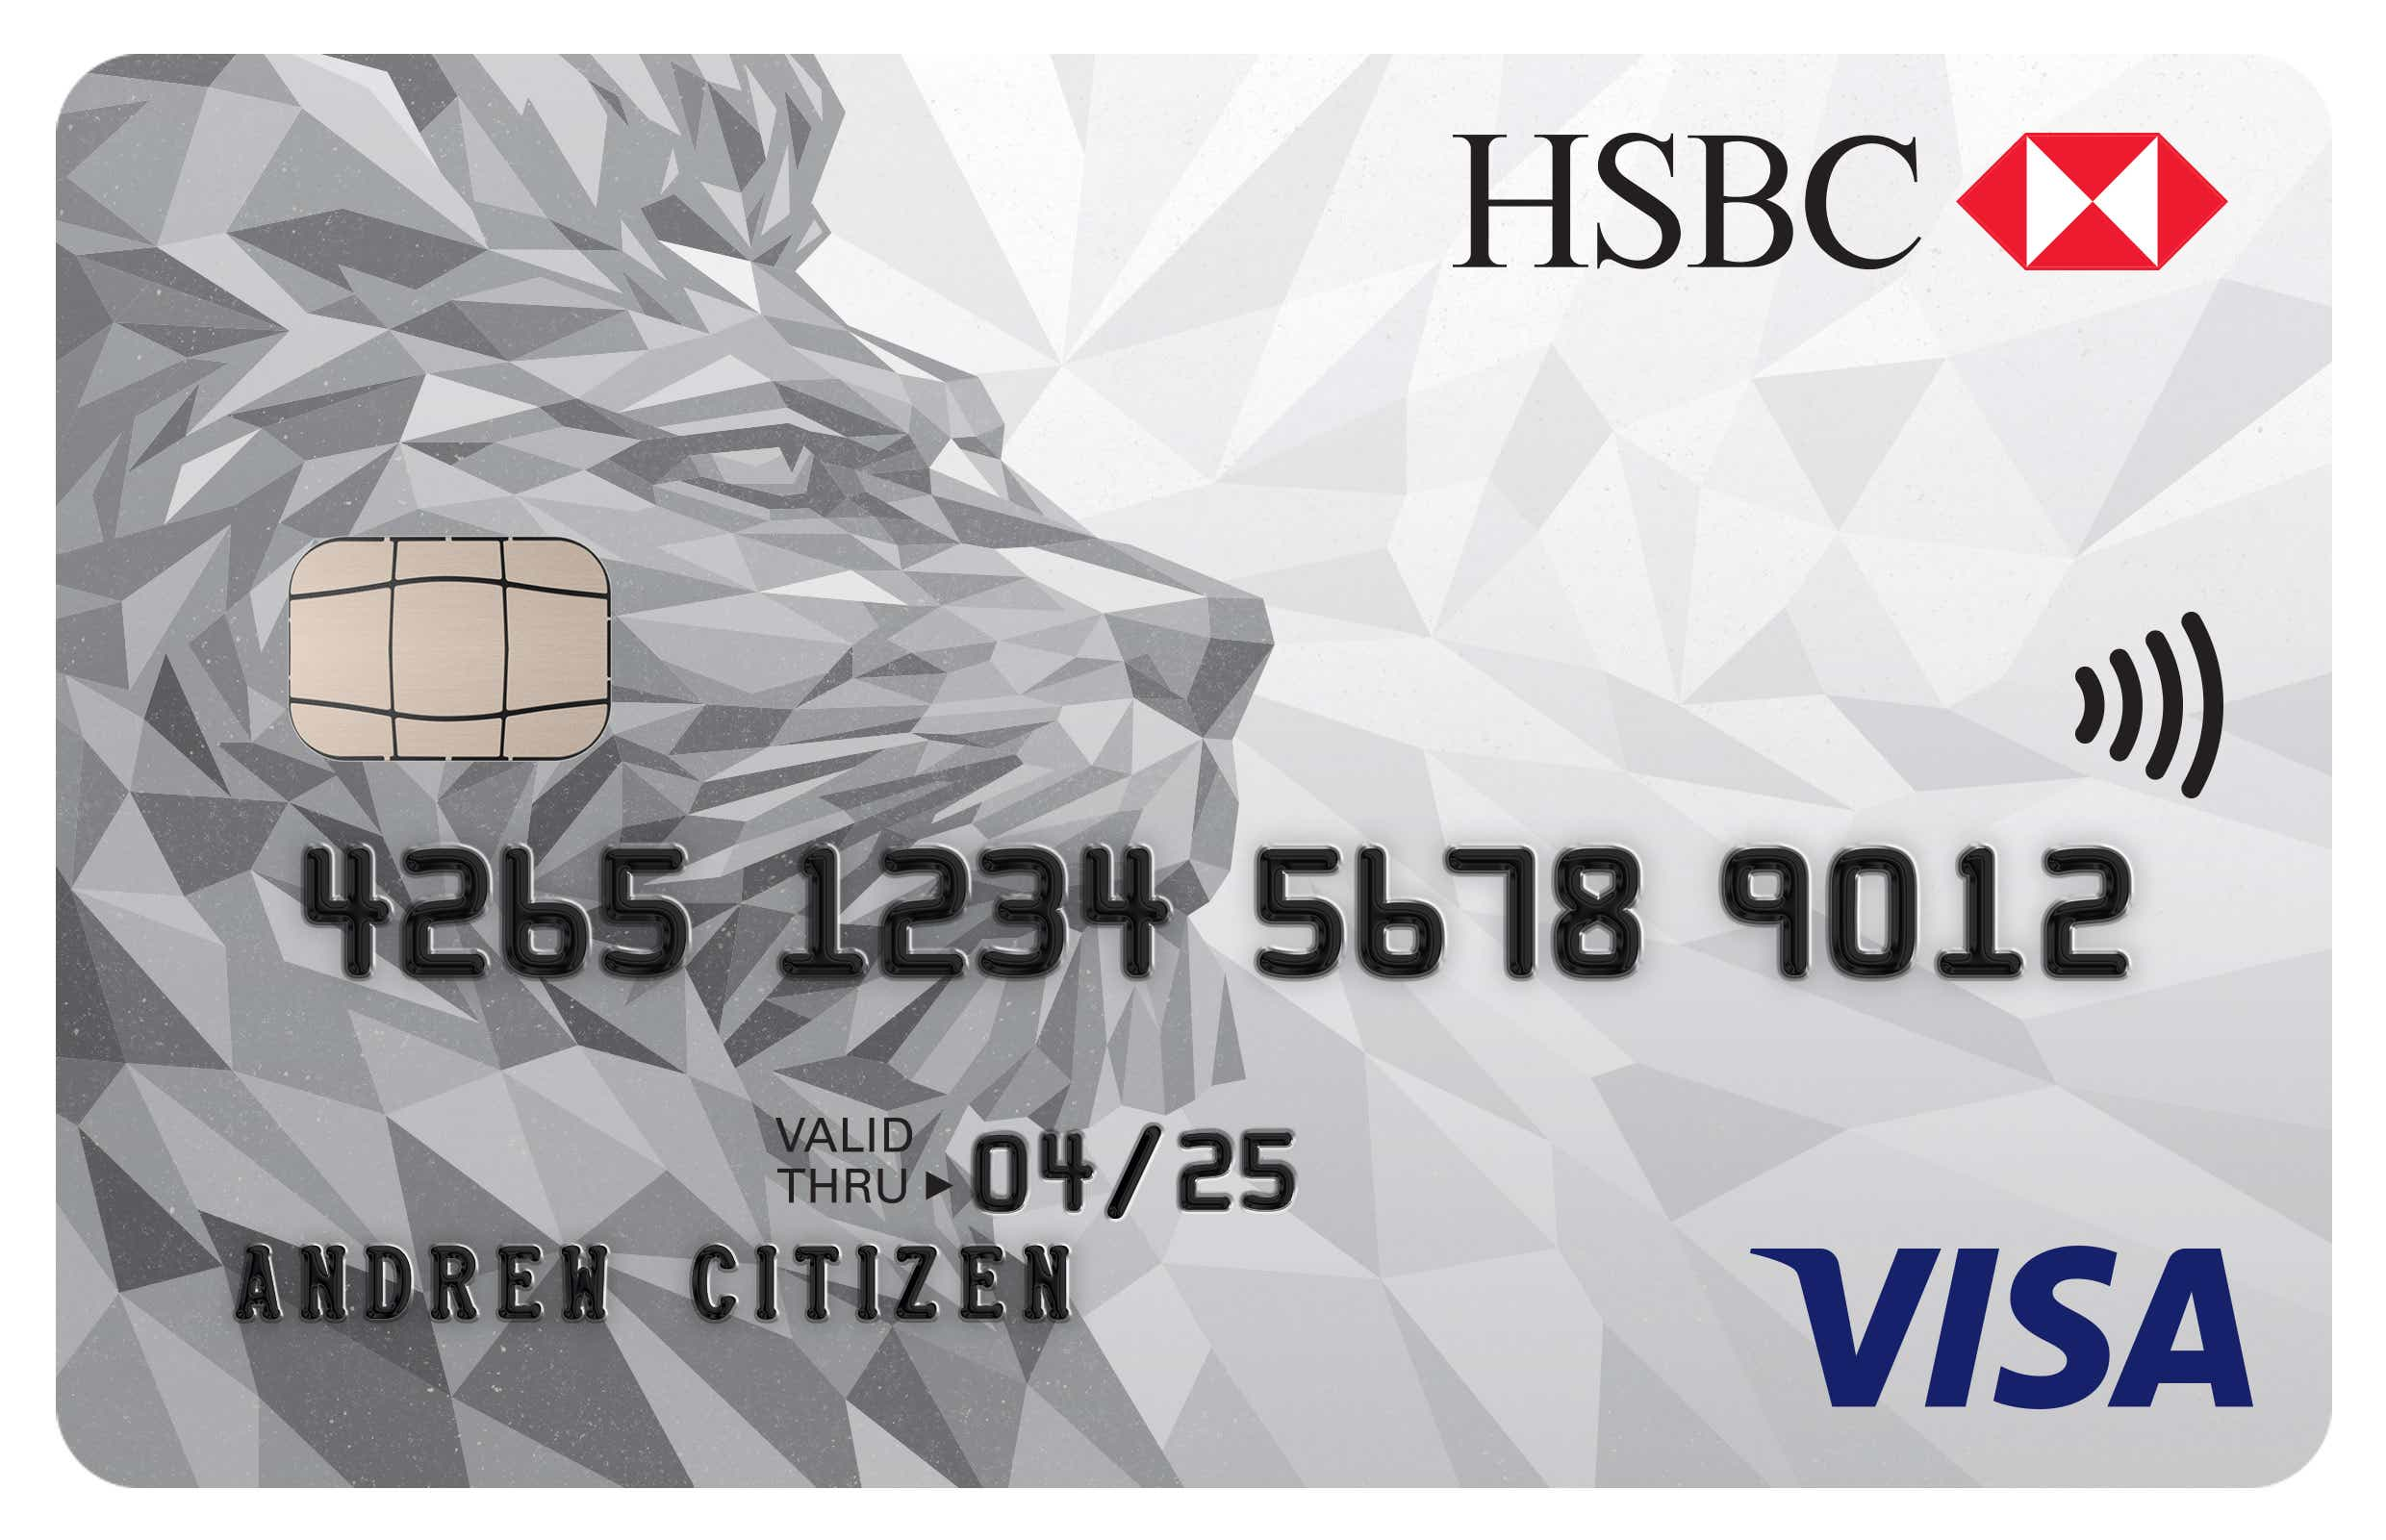 hsbc credit cards review pare save